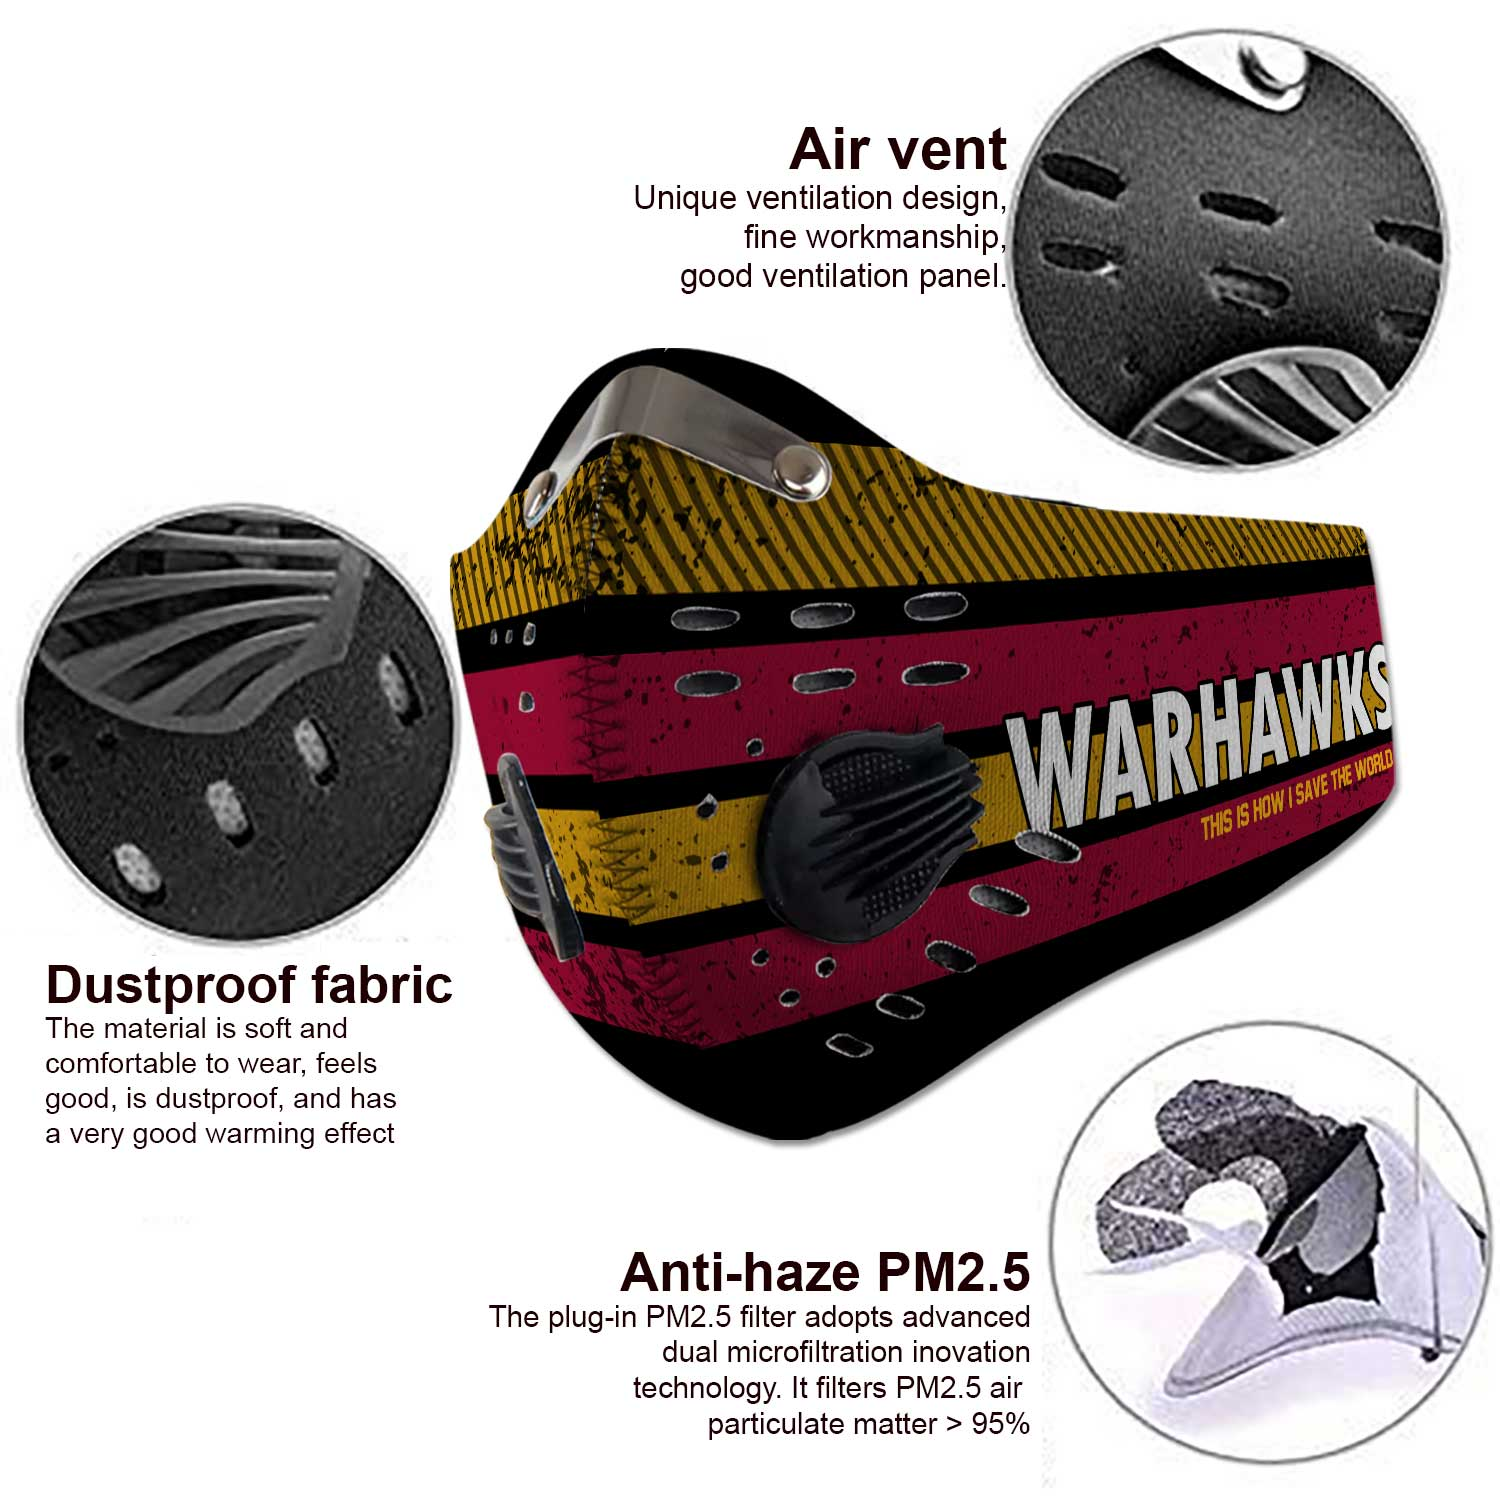 Louisiana monroe warhawks this is how i save the world face mask 3